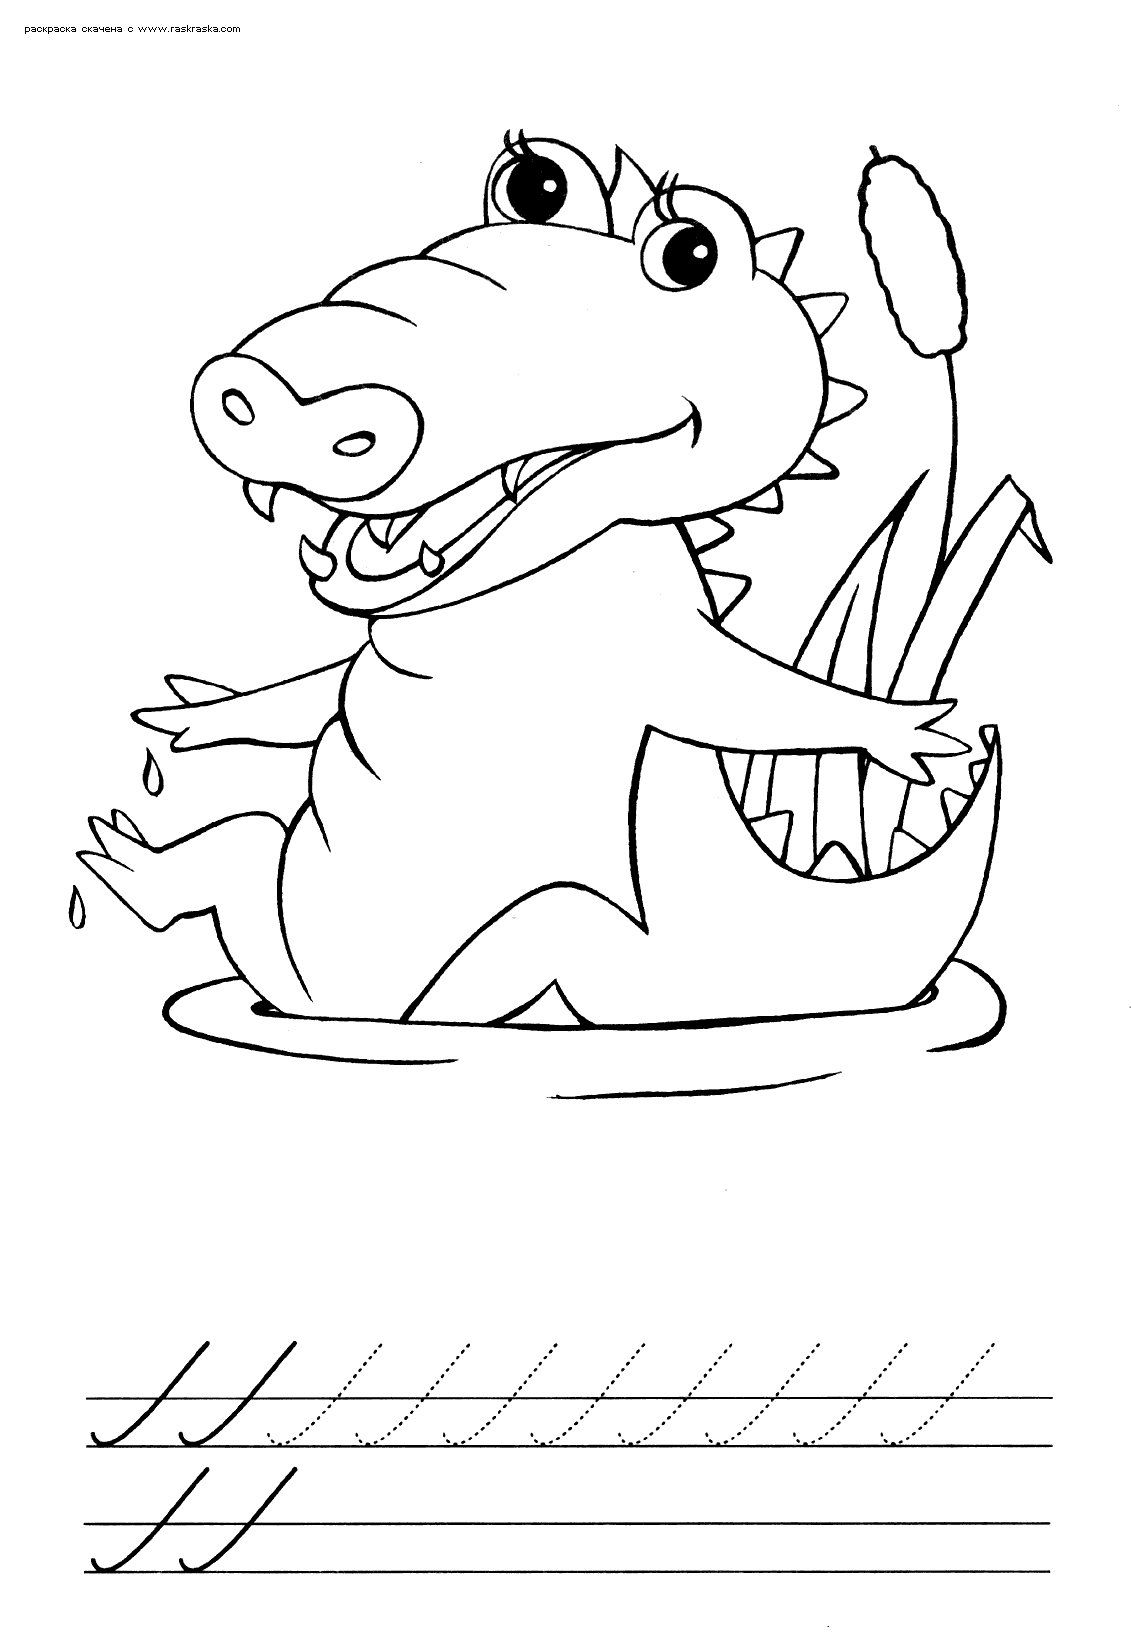 coloring wild and domestic animals birds fish raquo page 10 grafomotorik coloring pages. Black Bedroom Furniture Sets. Home Design Ideas